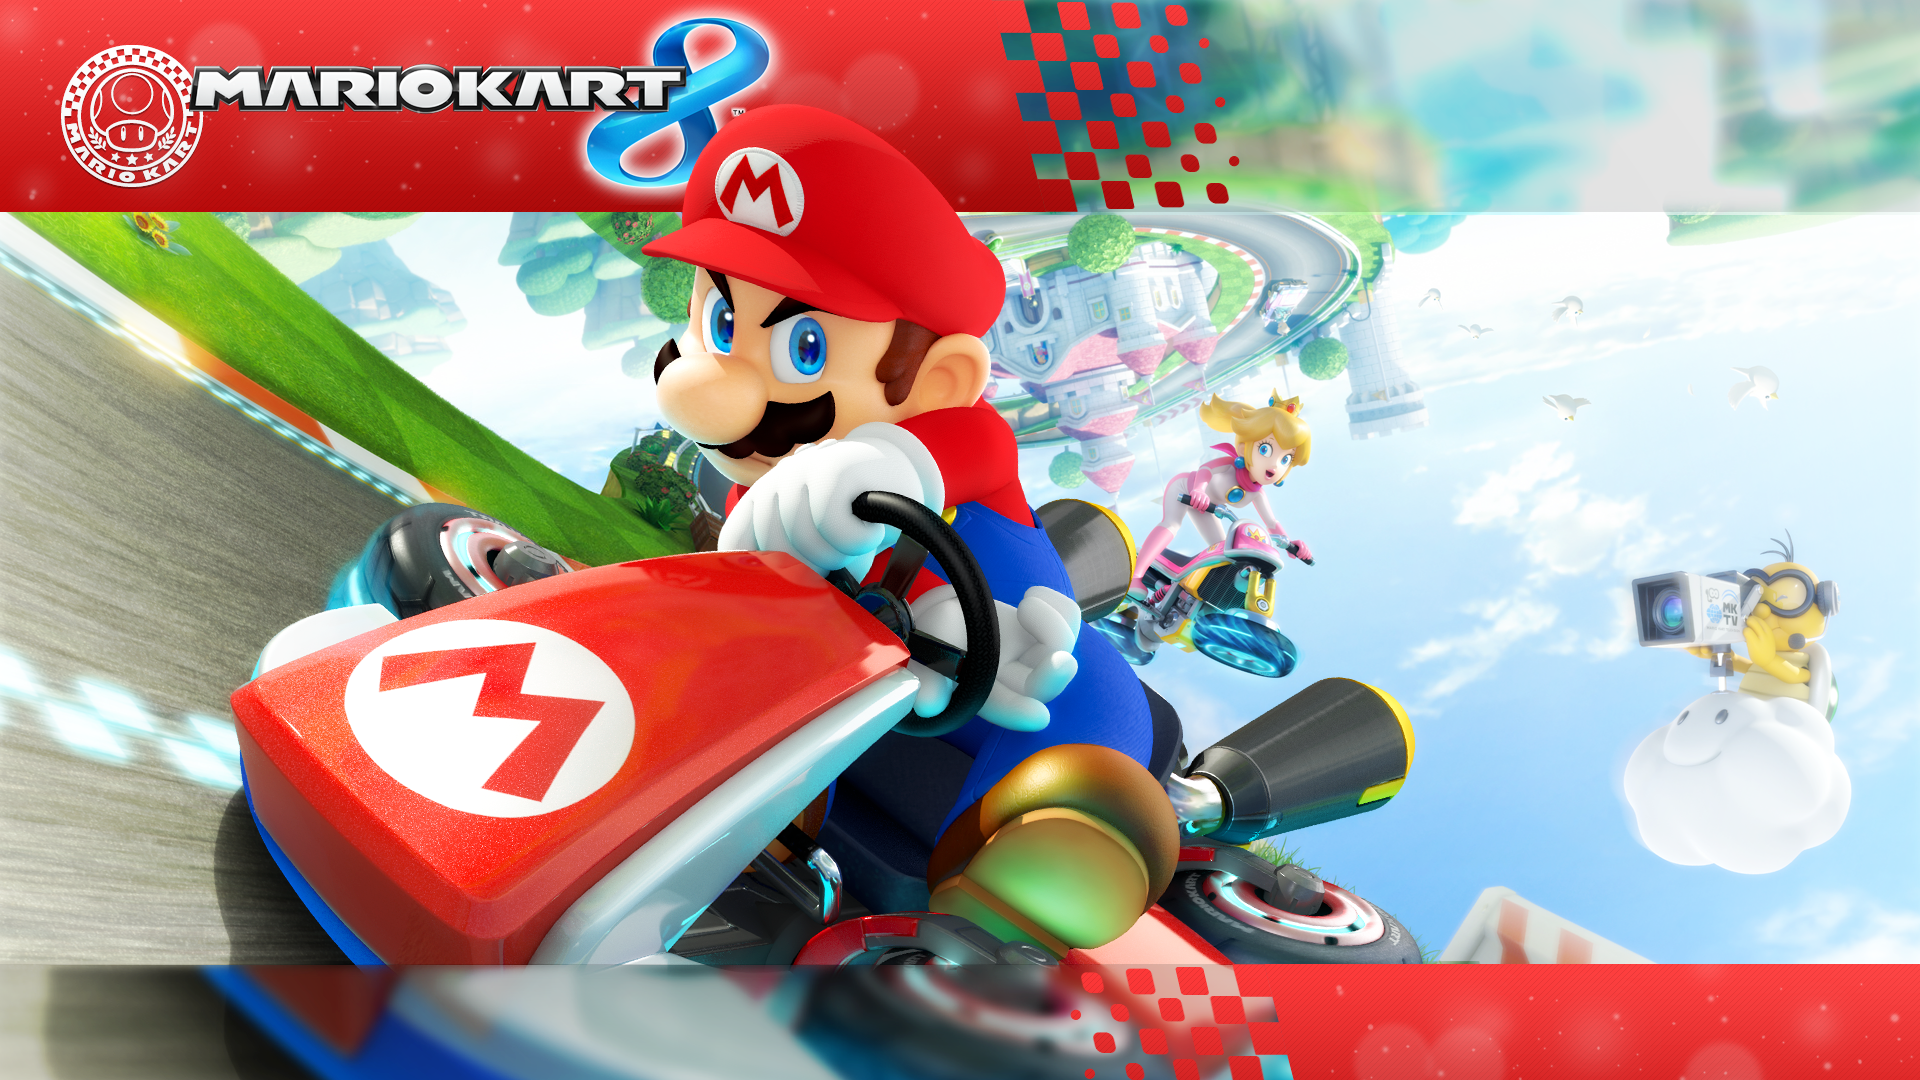 Mario Kart 8 Background: 1920 X 1080 Mario Kart 8 Wallpaper By MaxiGamer On DeviantArt